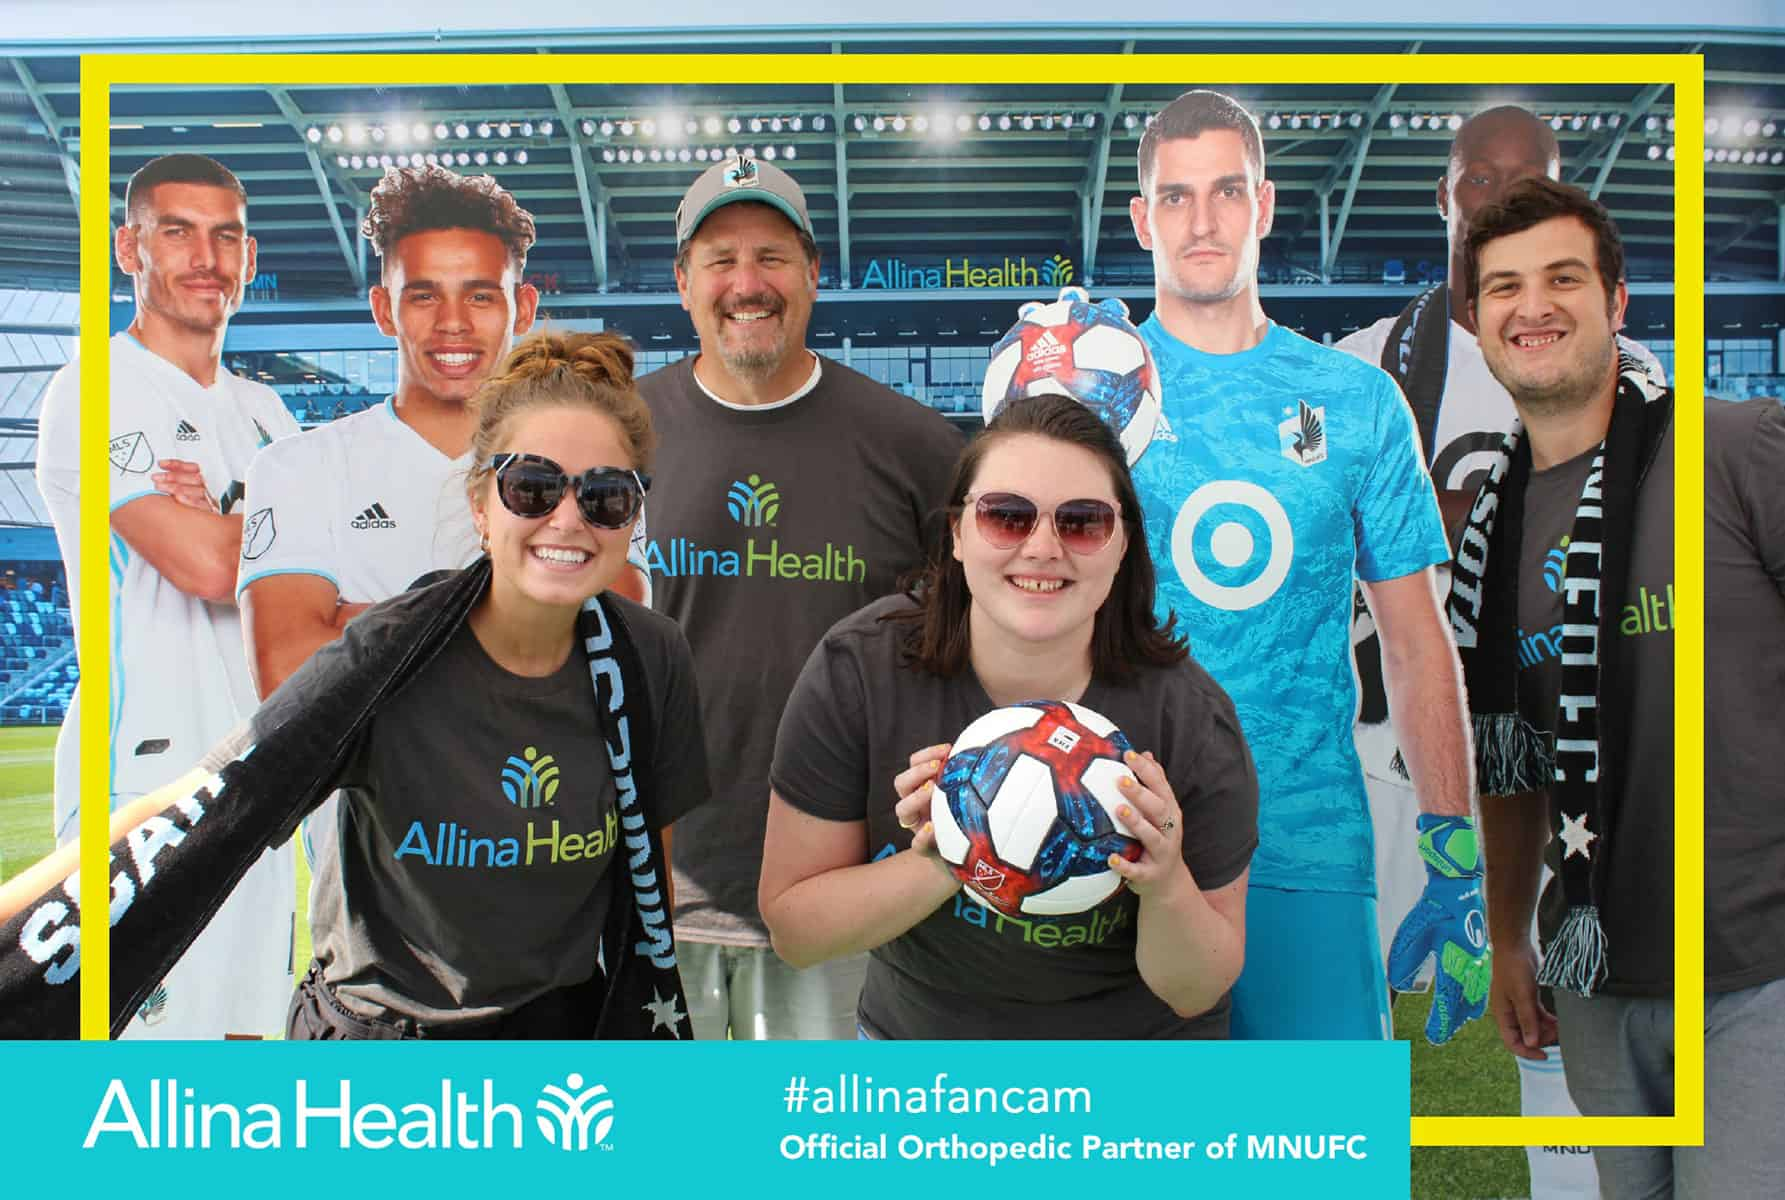 Allina-MNUFC metroConnections Newsletter 2019 Fall